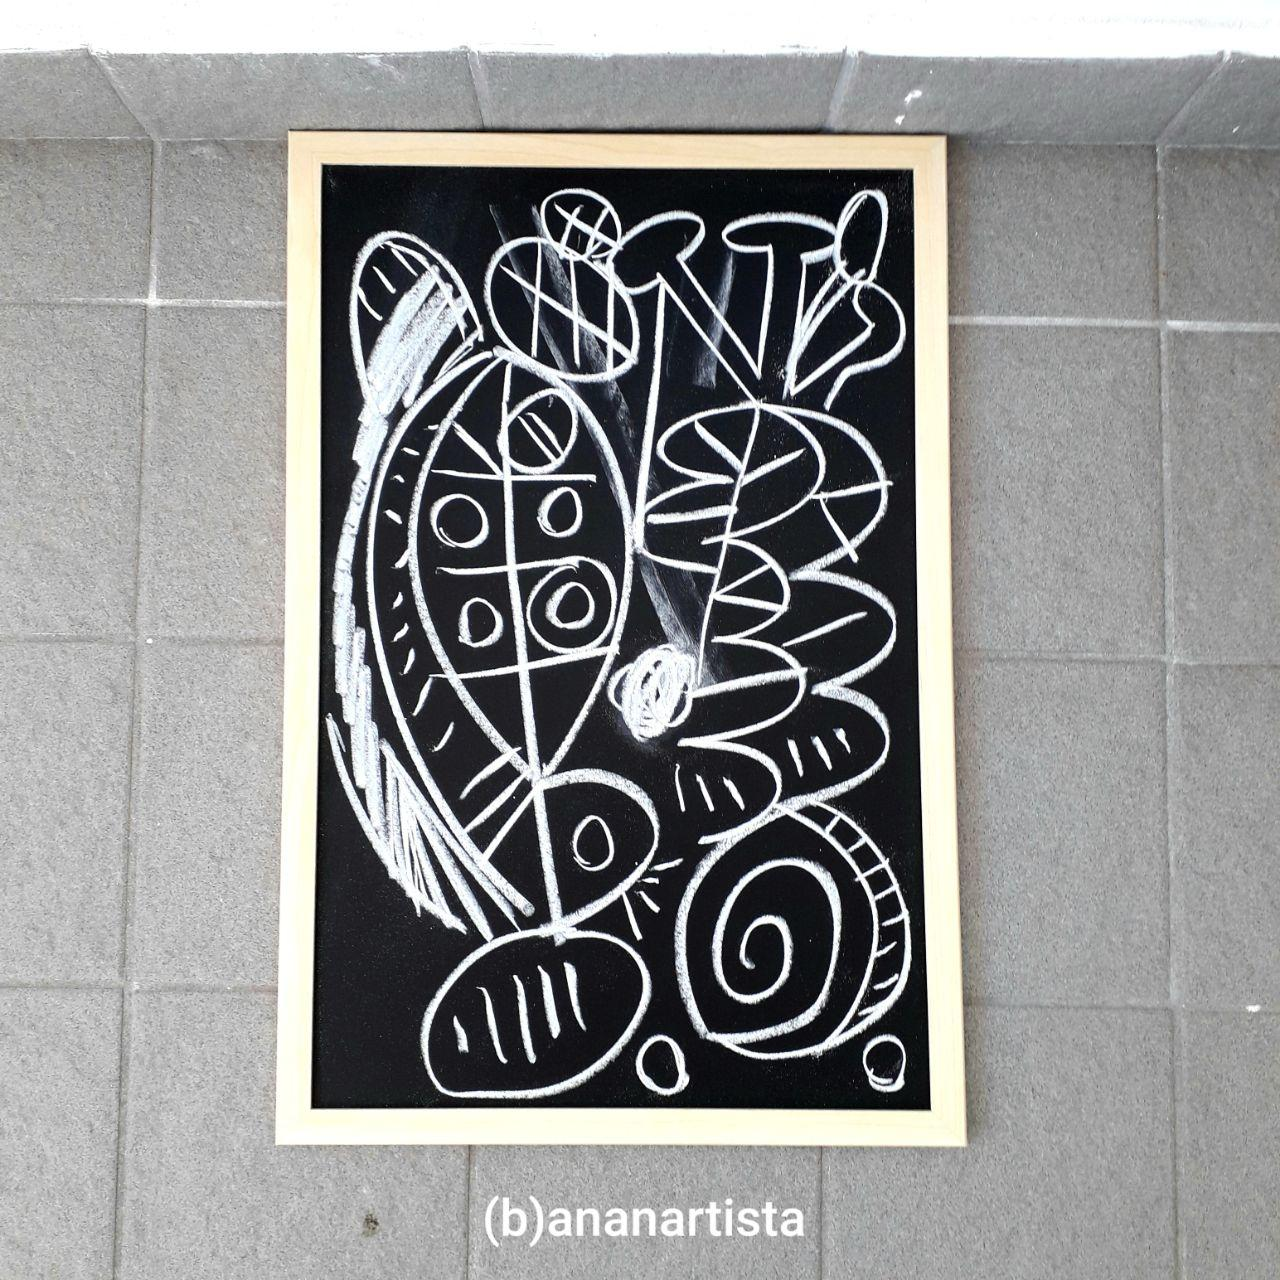 abstract chalk art by (b)ananartista sbuff